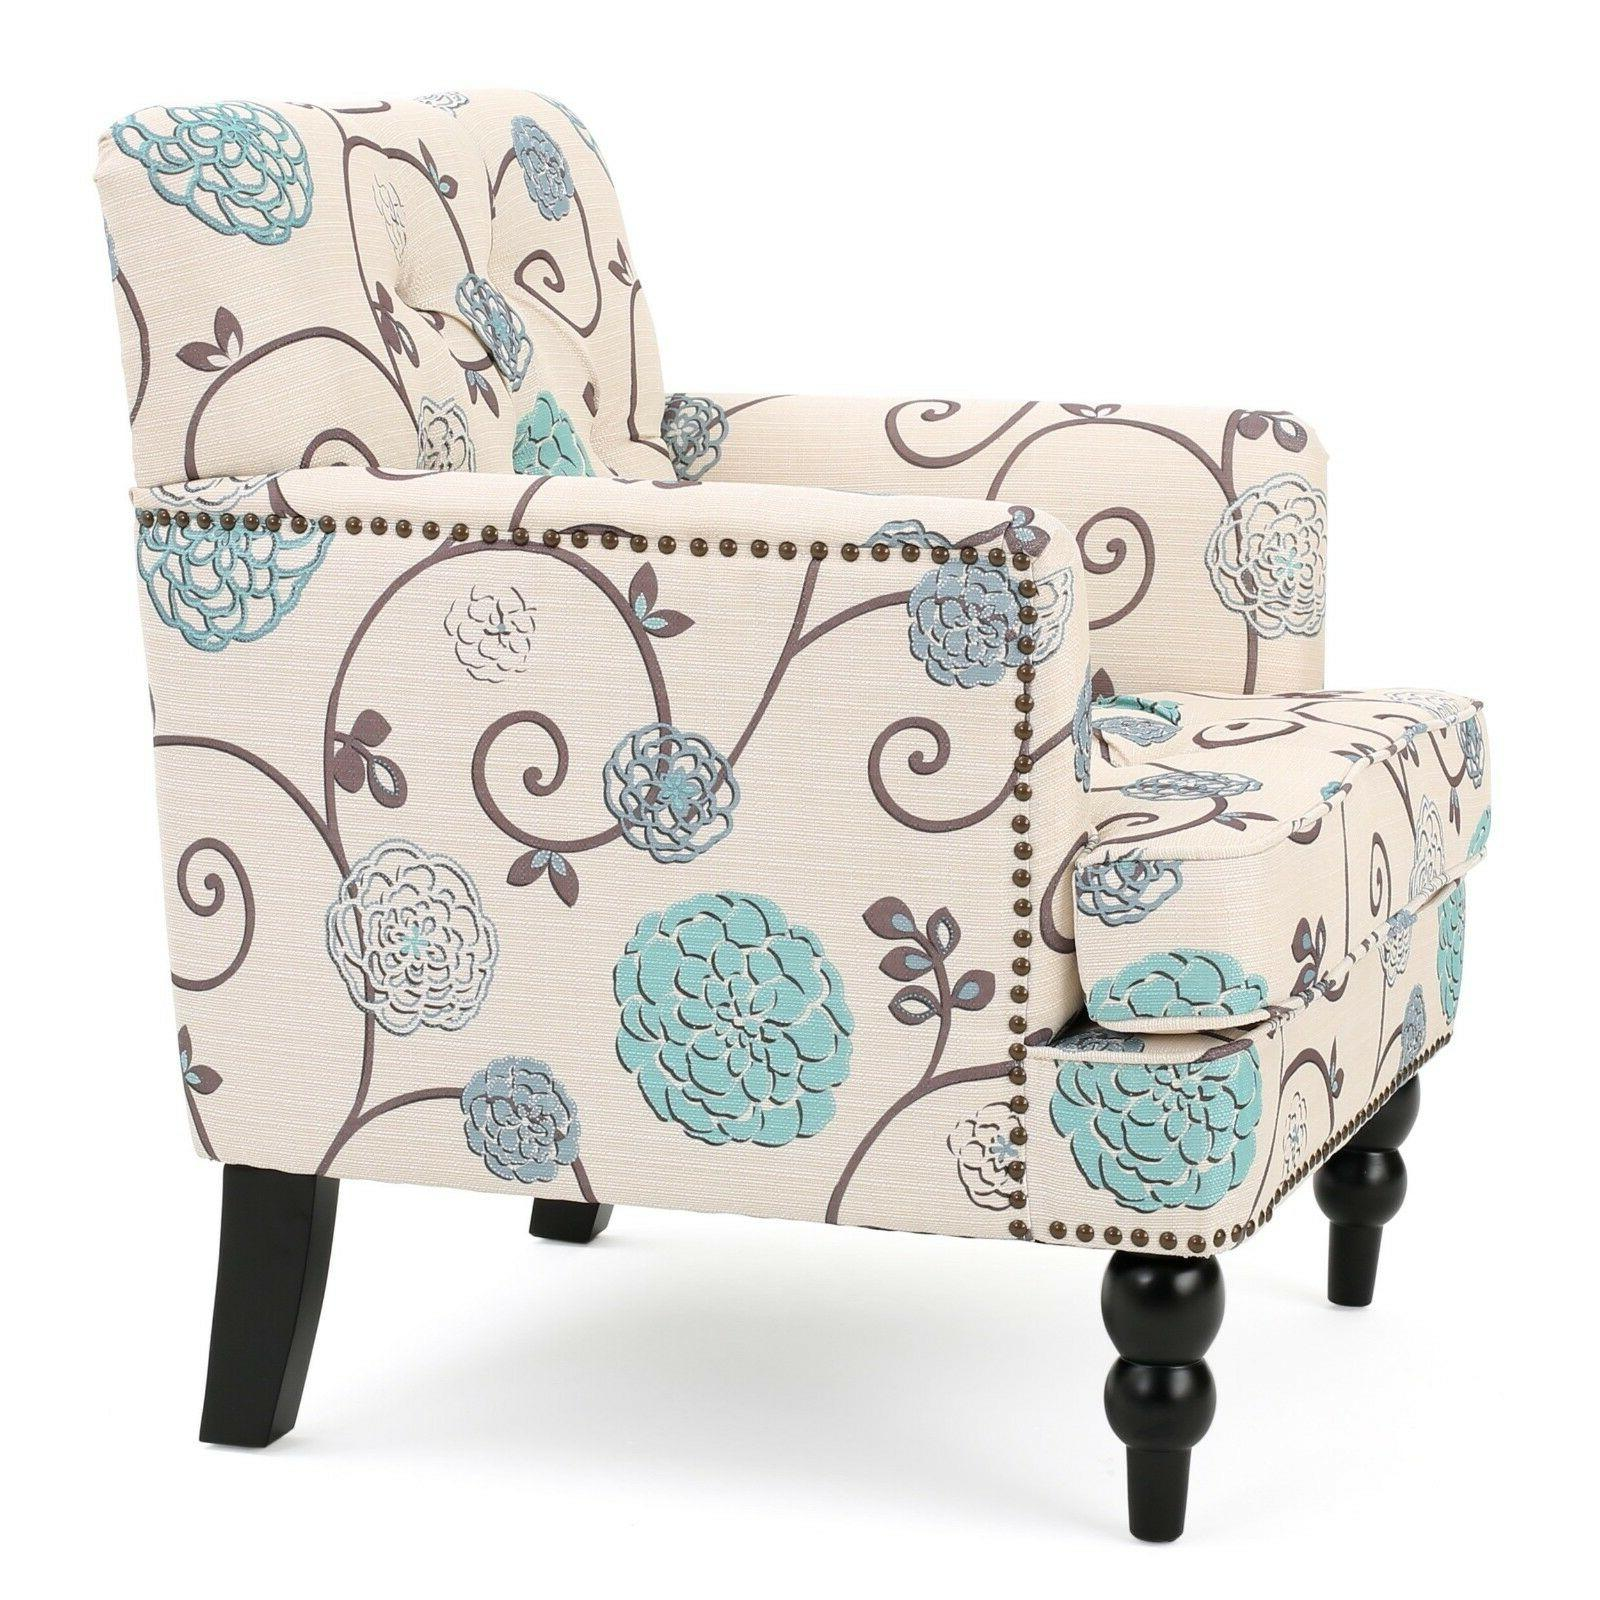 NEW Tufted Padded Living Room Club White Seat